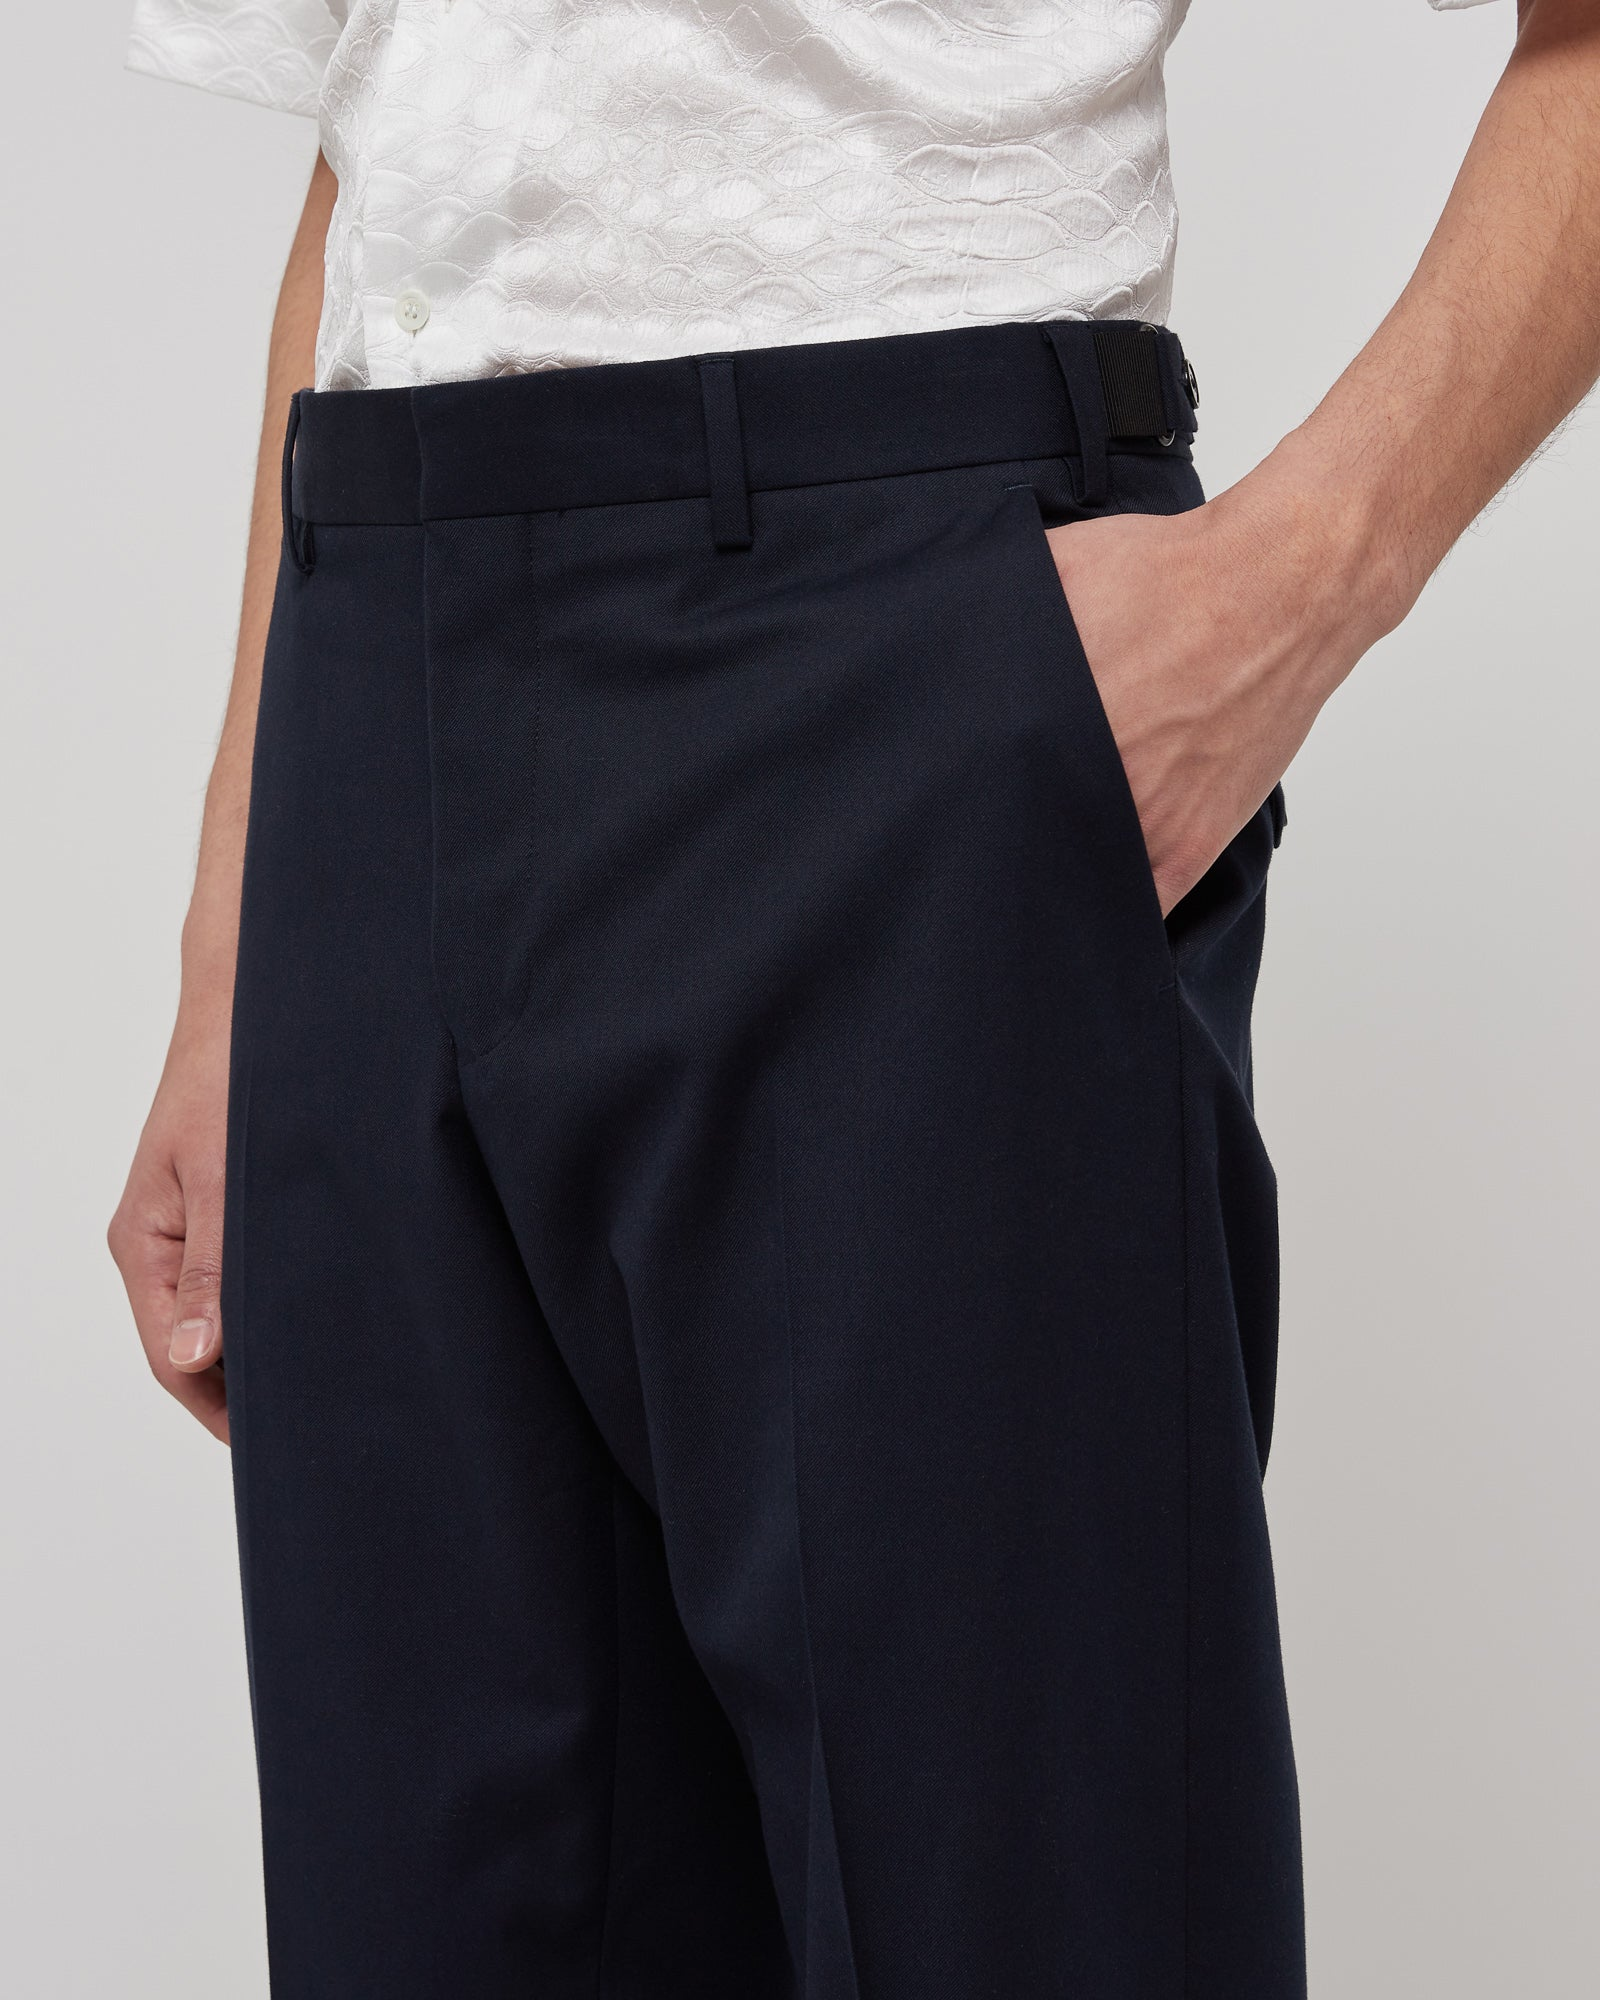 Philip Pants in Navy